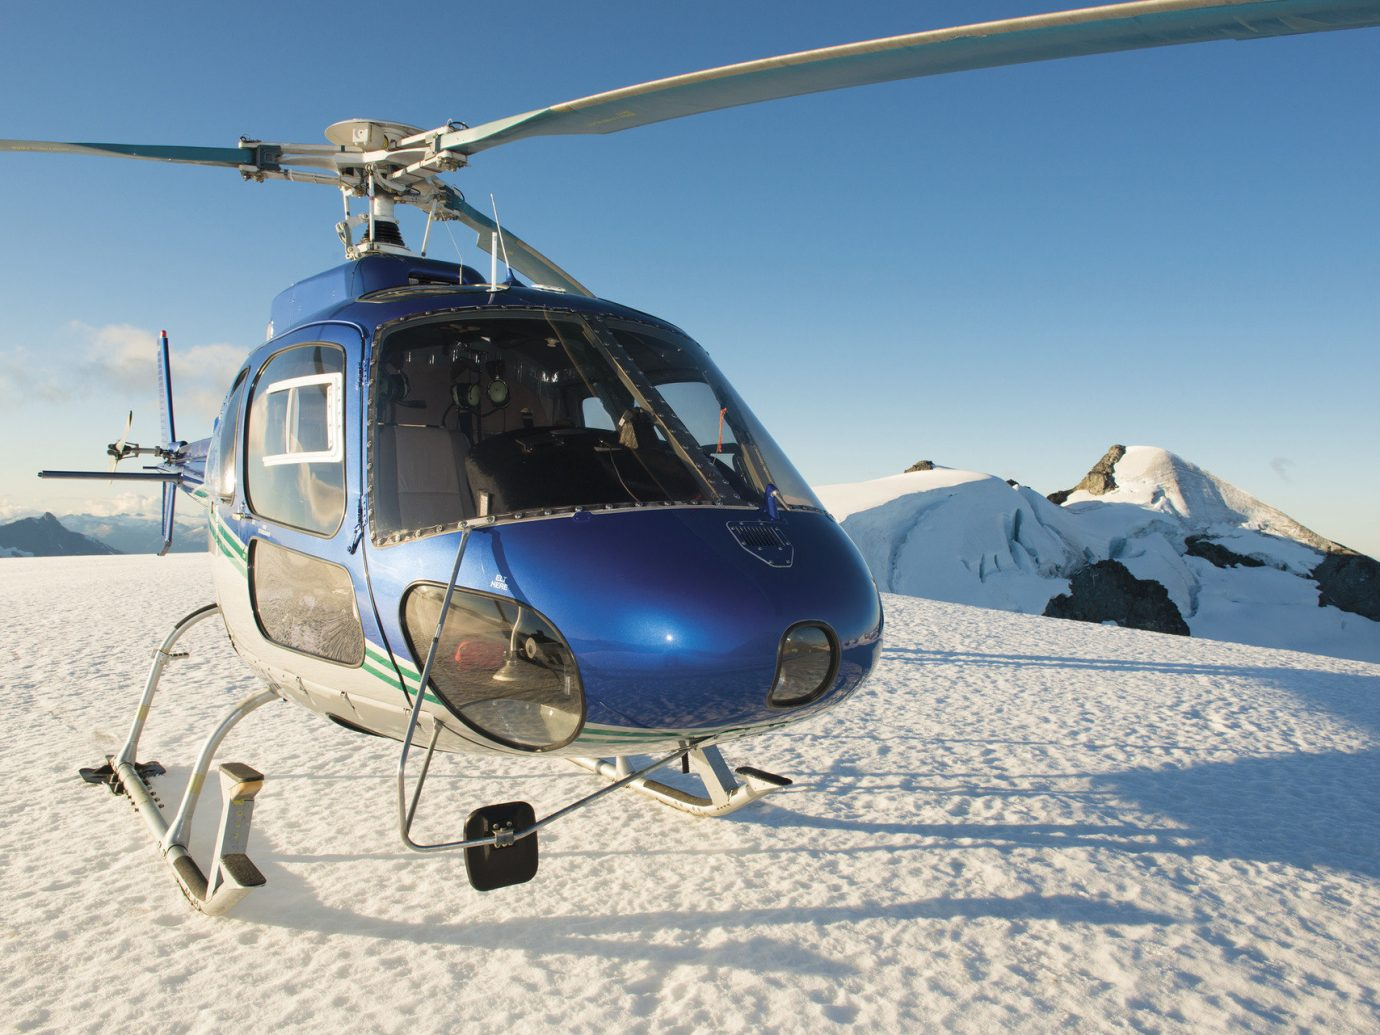 helicopter Hotels isolation Luxury Travel Mountains remote snow transportation Winter sky outdoor vehicle helicopter rotor rotorcraft aircraft transport atmosphere of earth aviation military helicopter flight autogiro